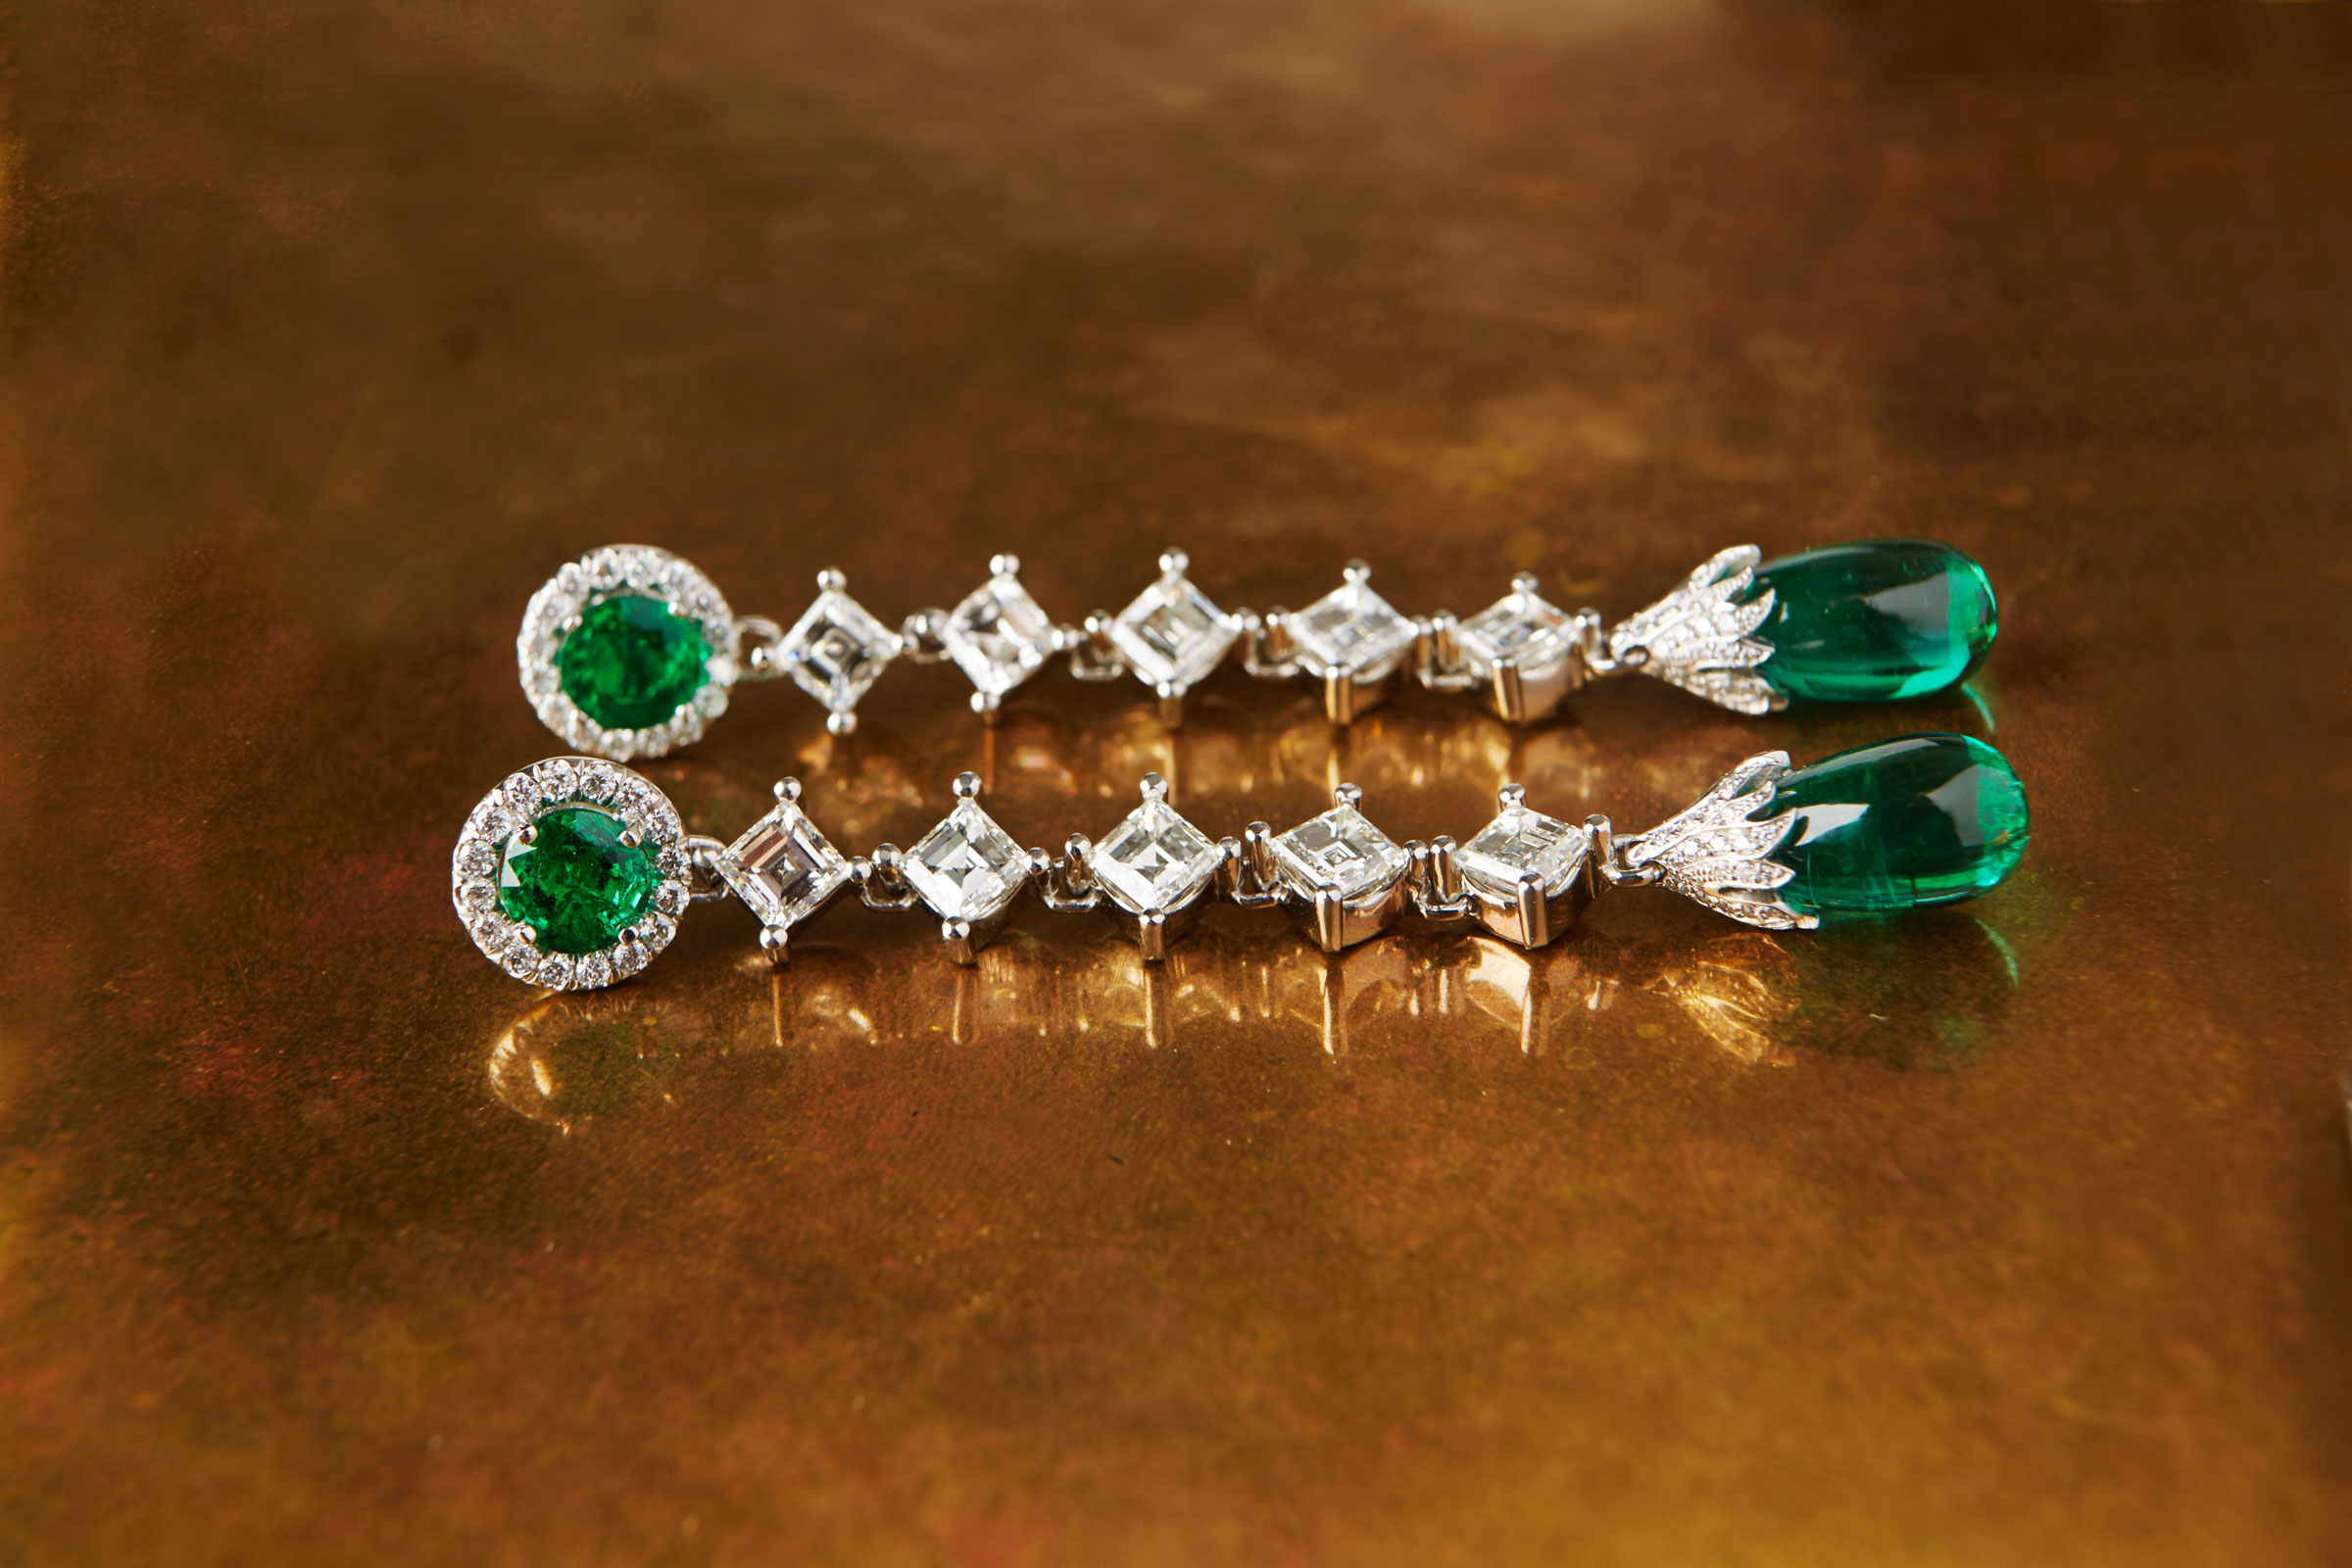 emerald-earrings2.jpg